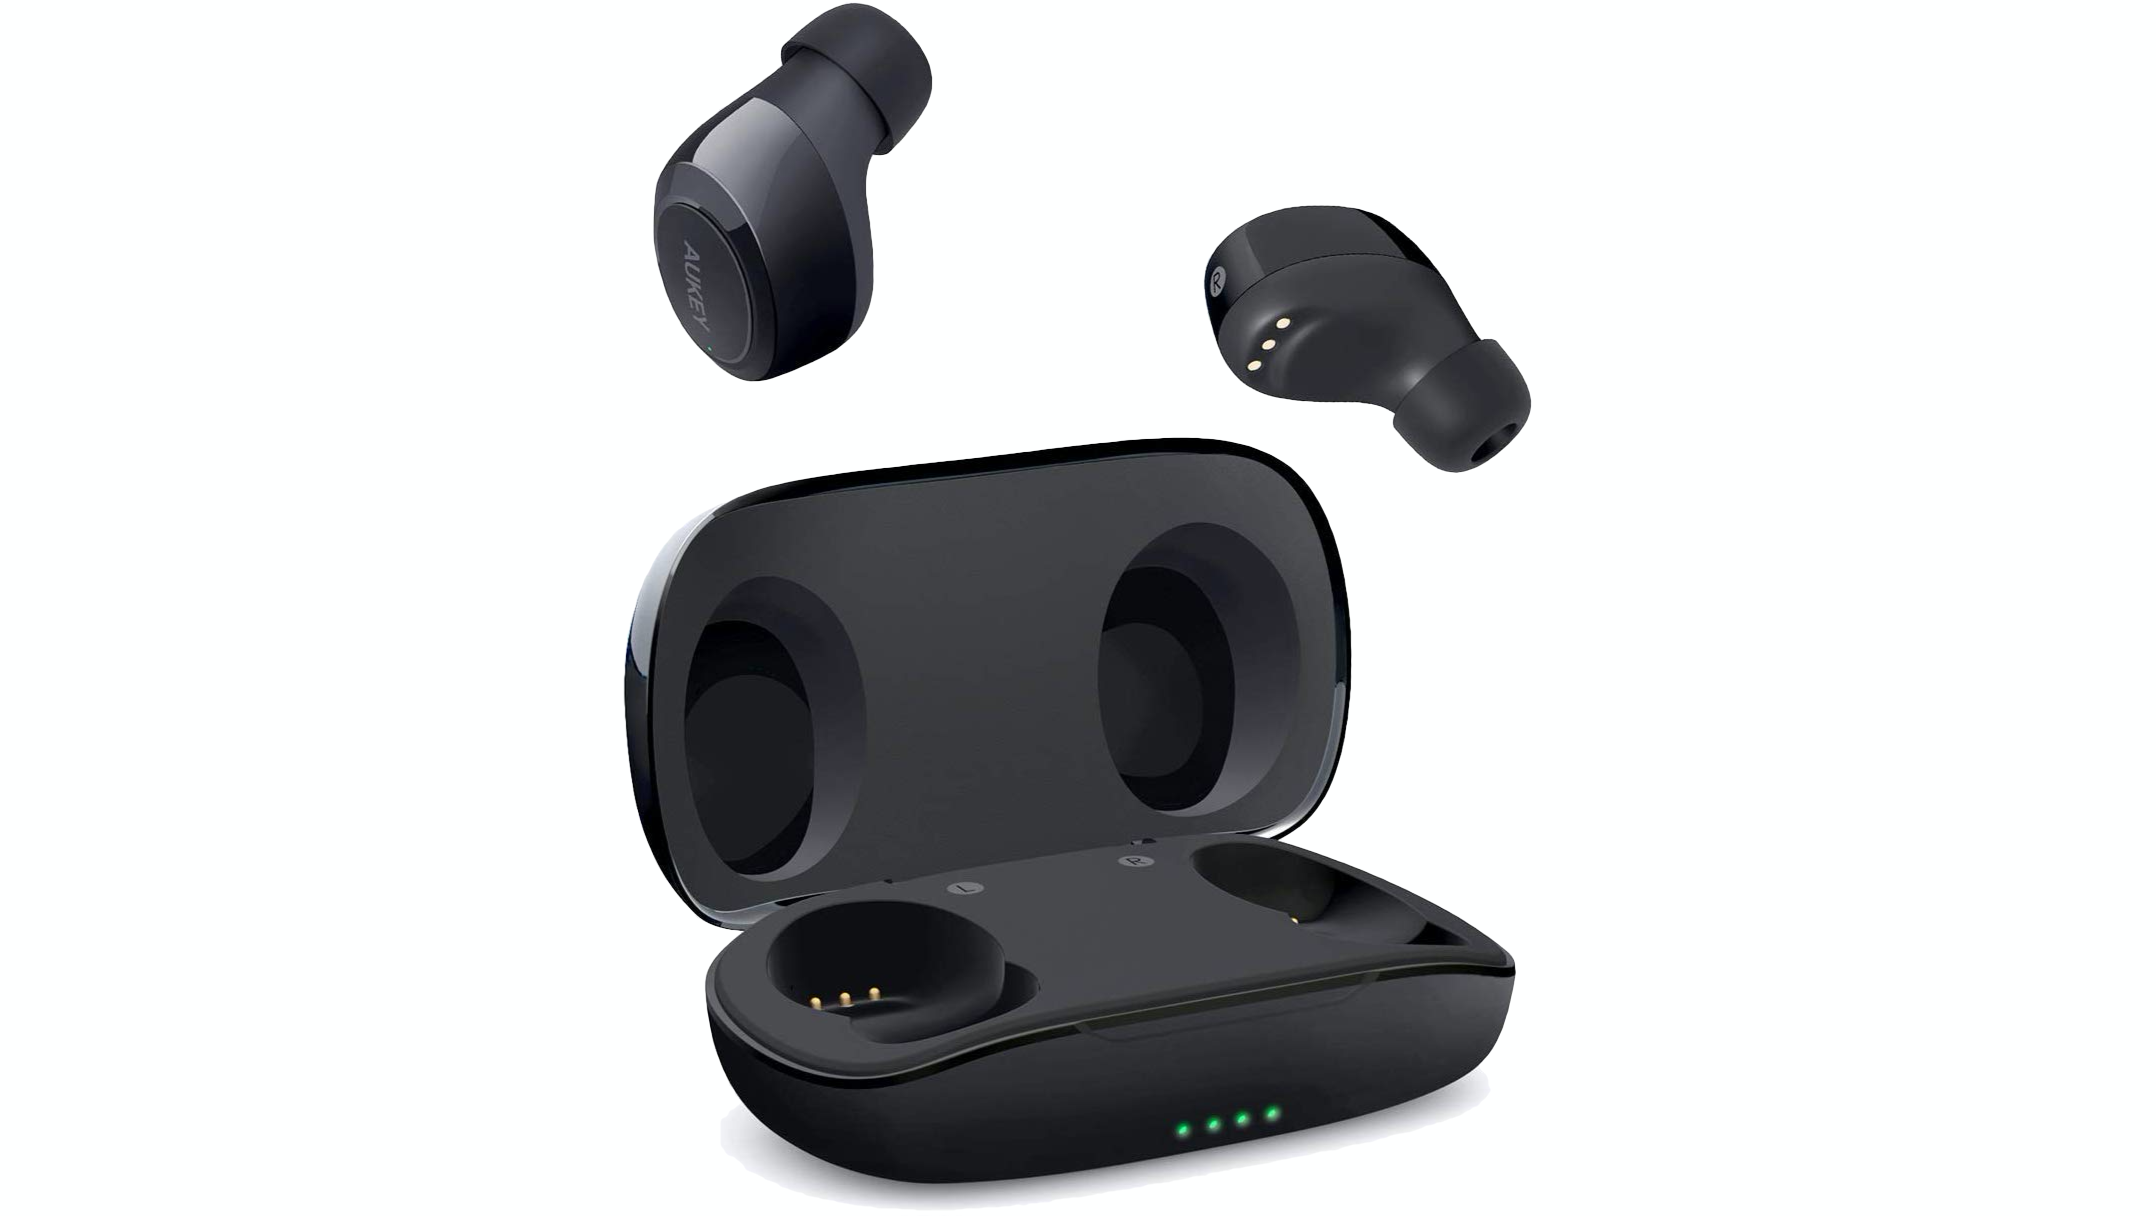 Aukey S True Wireless Earbuds Are Down To 30 With Promo Code On Amazon 20 Off